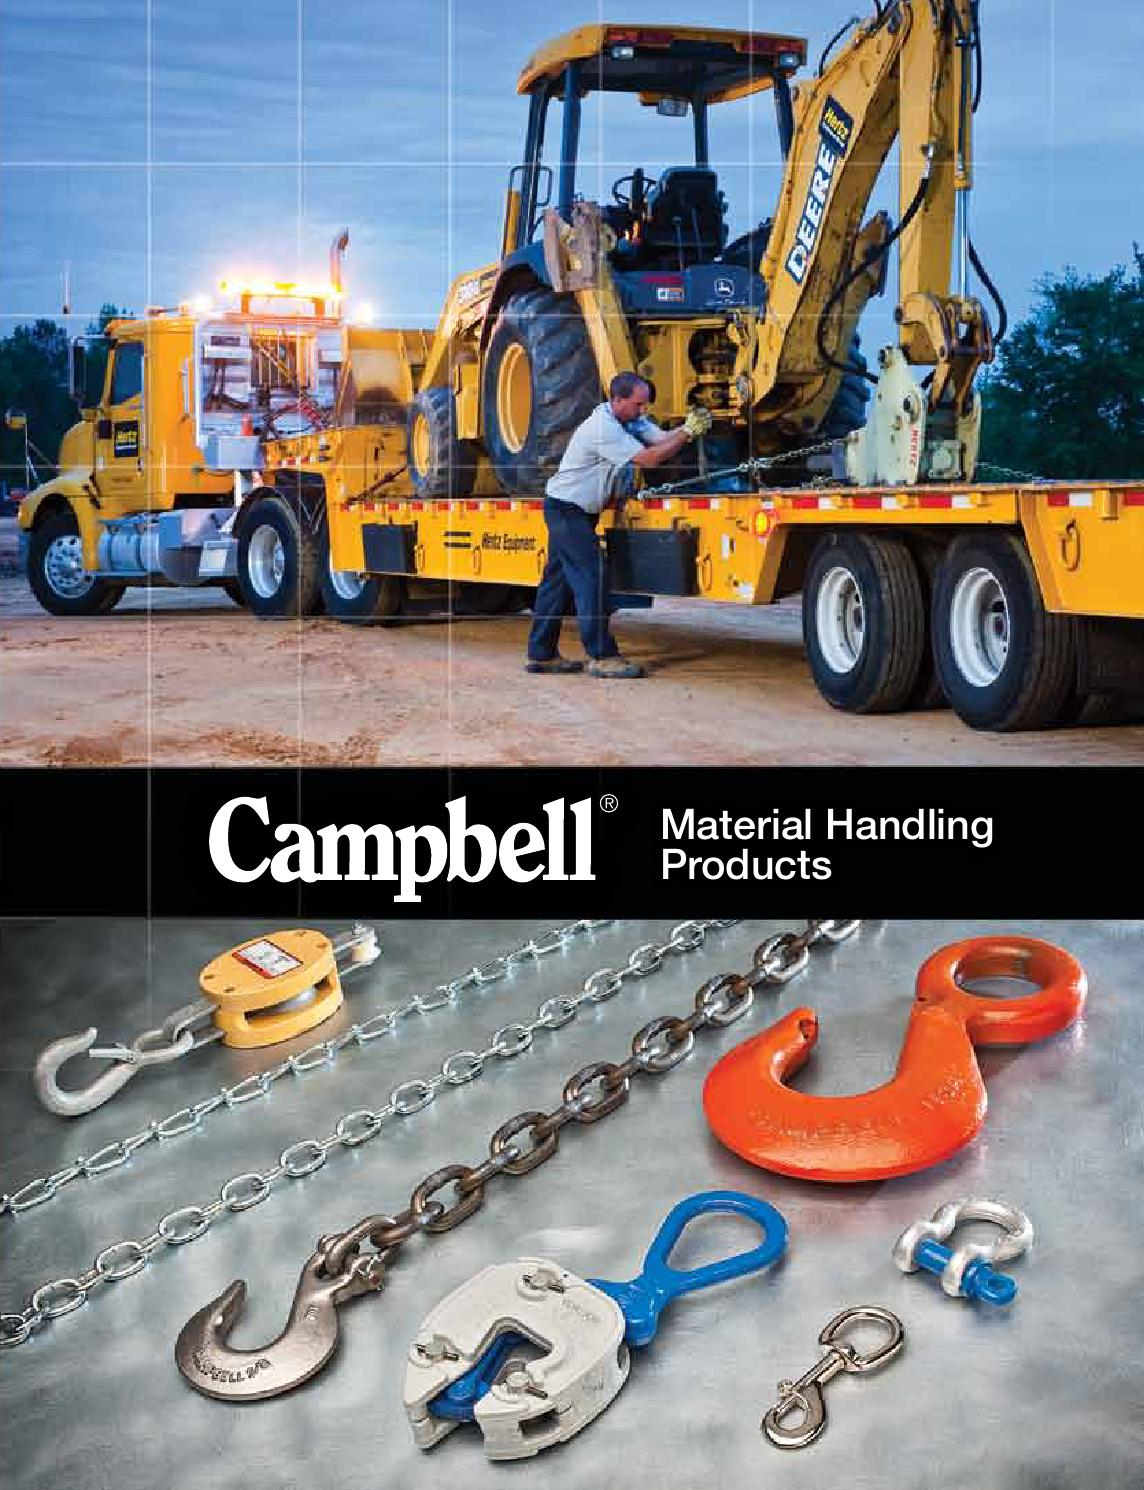 Campbell 6506210 Replacement Shackle//Linkage Kit for 1 ton GXL Clamp